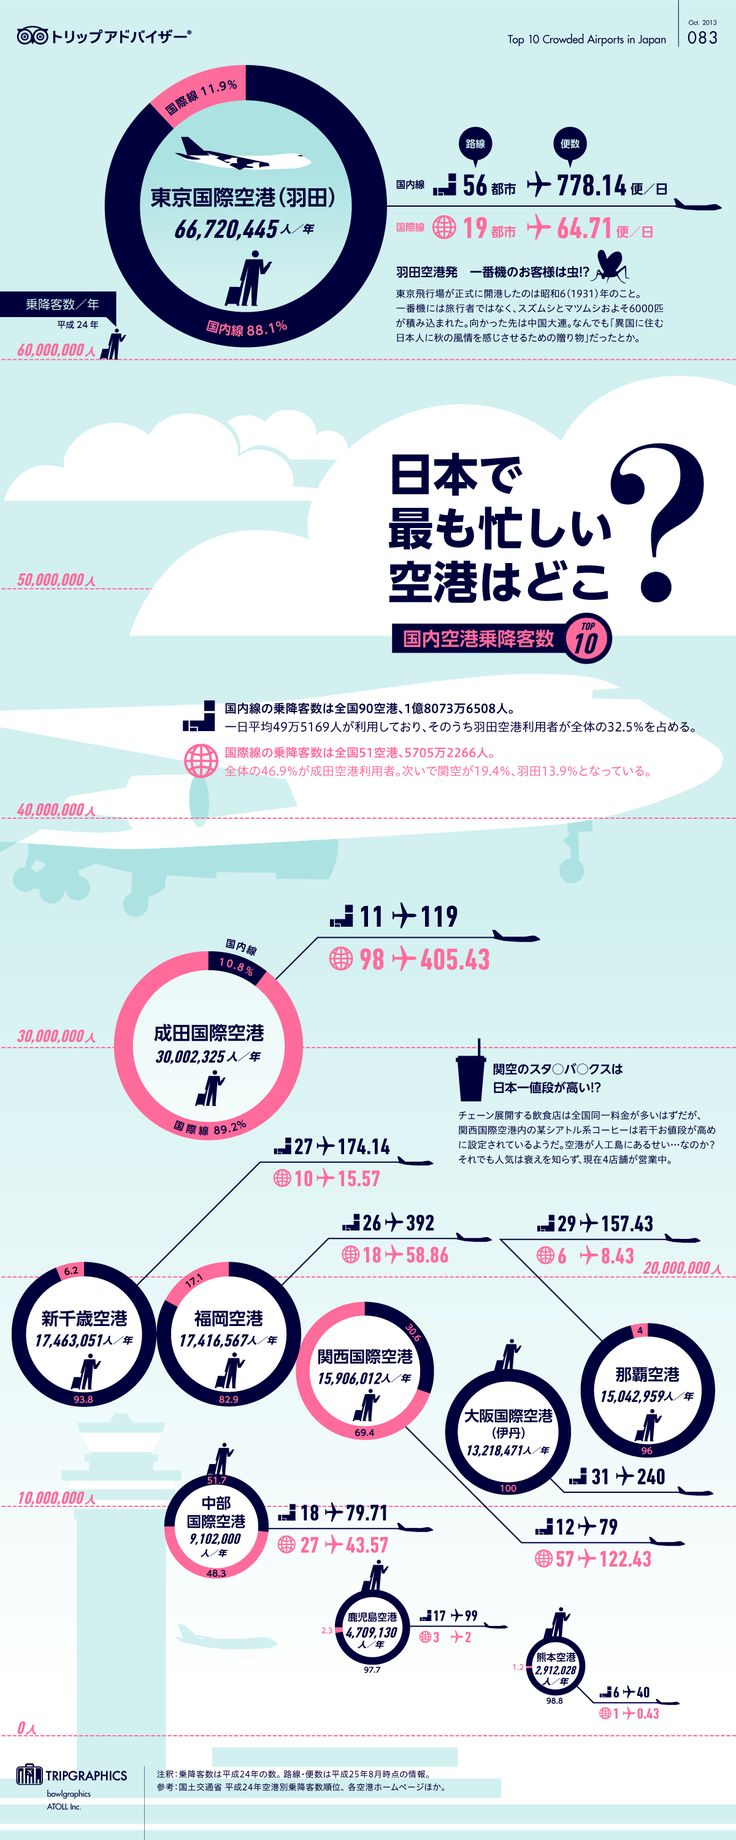 Where airport is busiest in Japan? 日本で最も忙しい空港はどこ?…